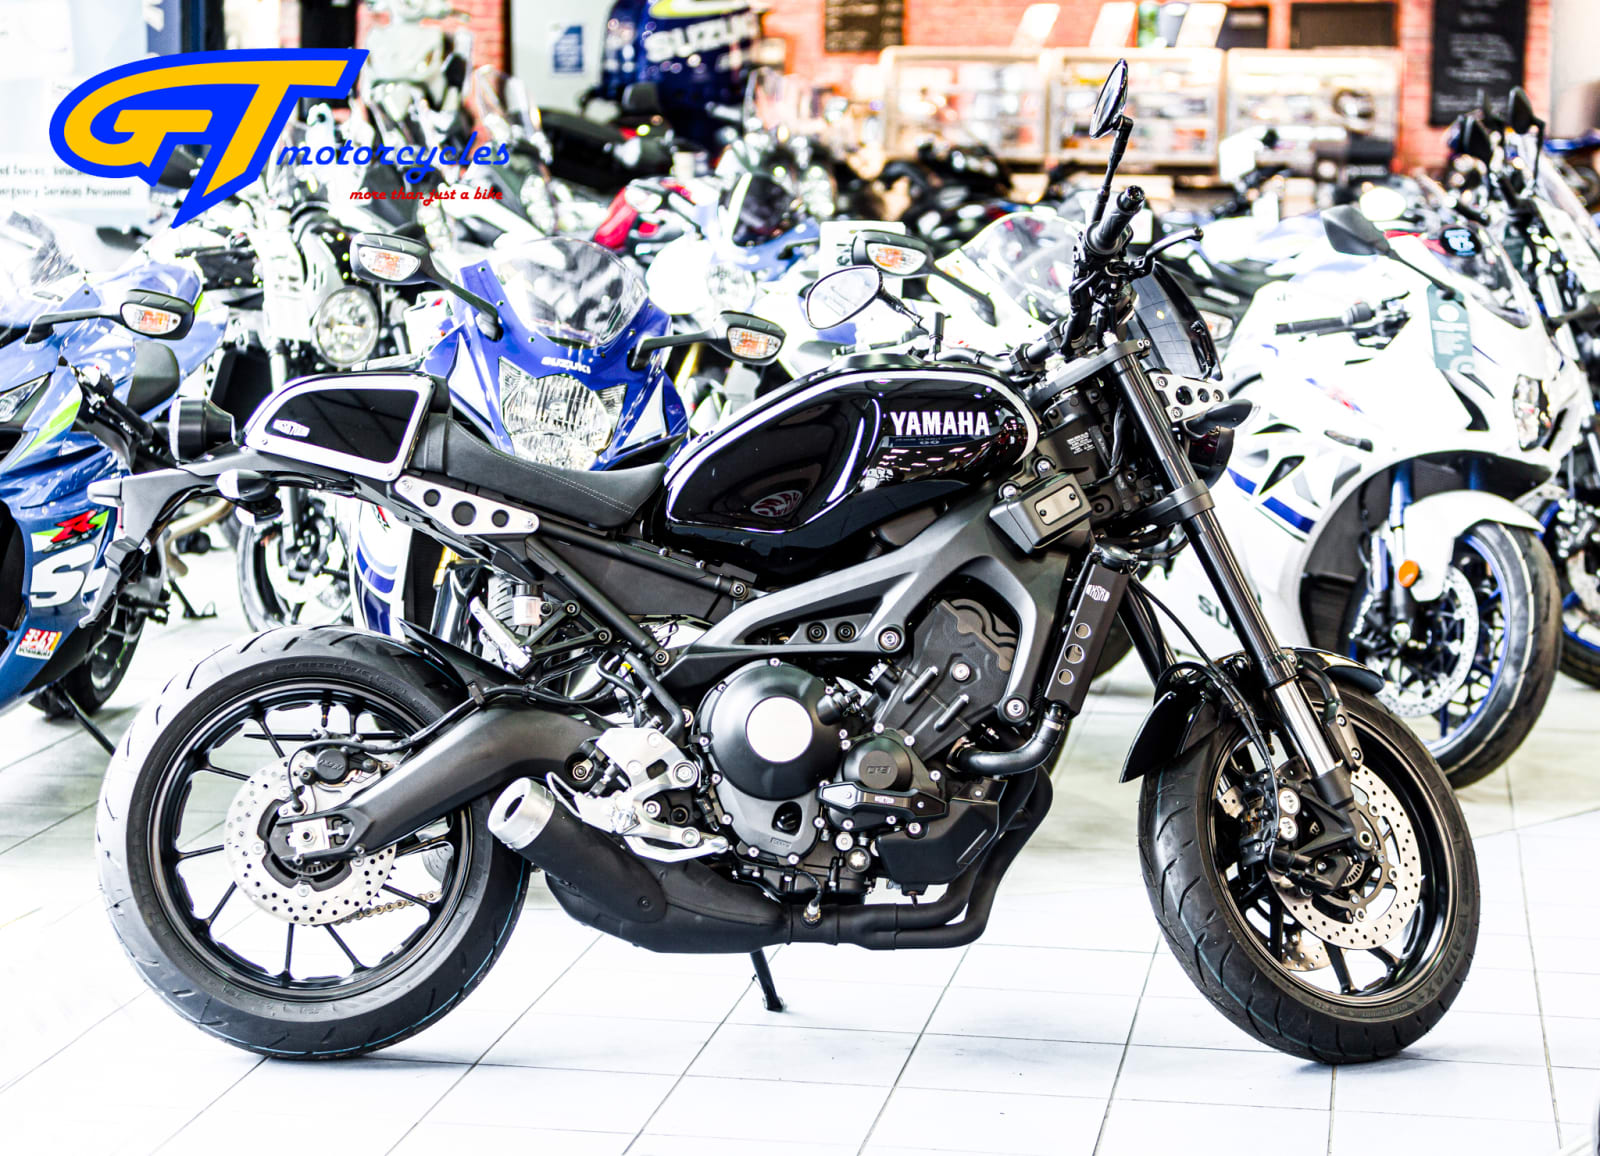 picture of a Yamaha XSR 900 Cafe Racer